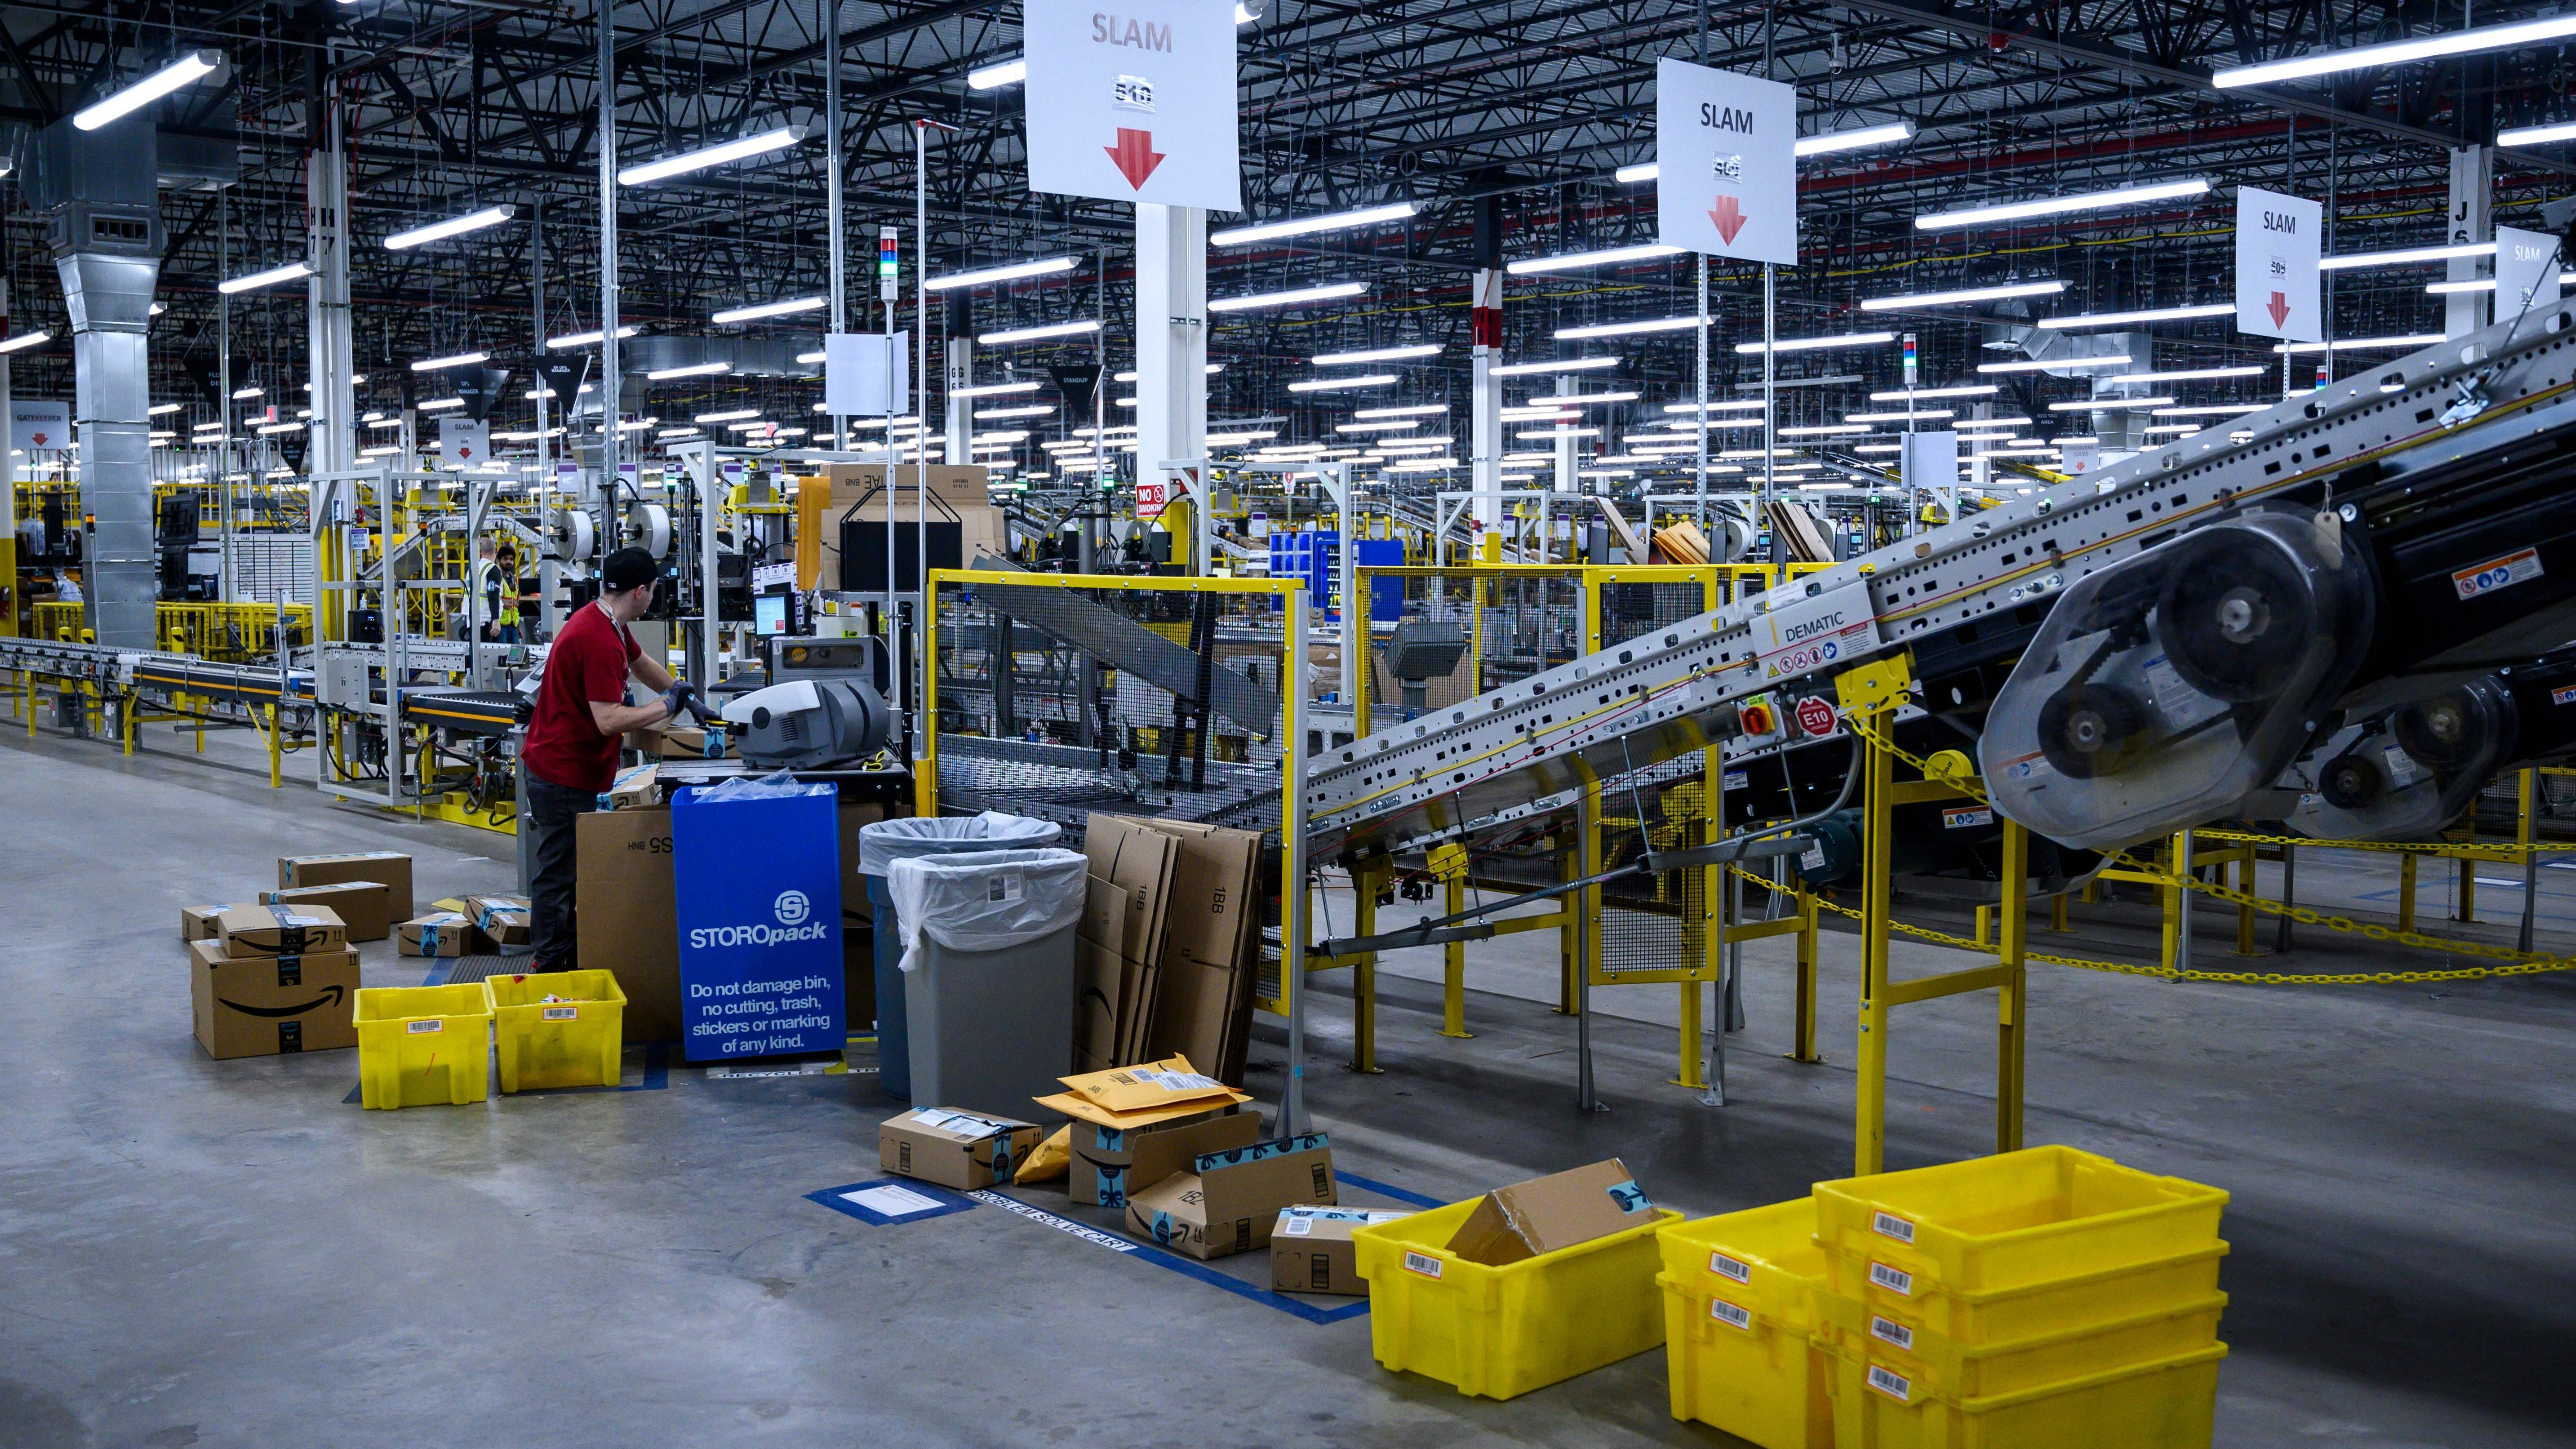 A man works at a conveyor belt at an Amazon warehouse in New York City in 2019.